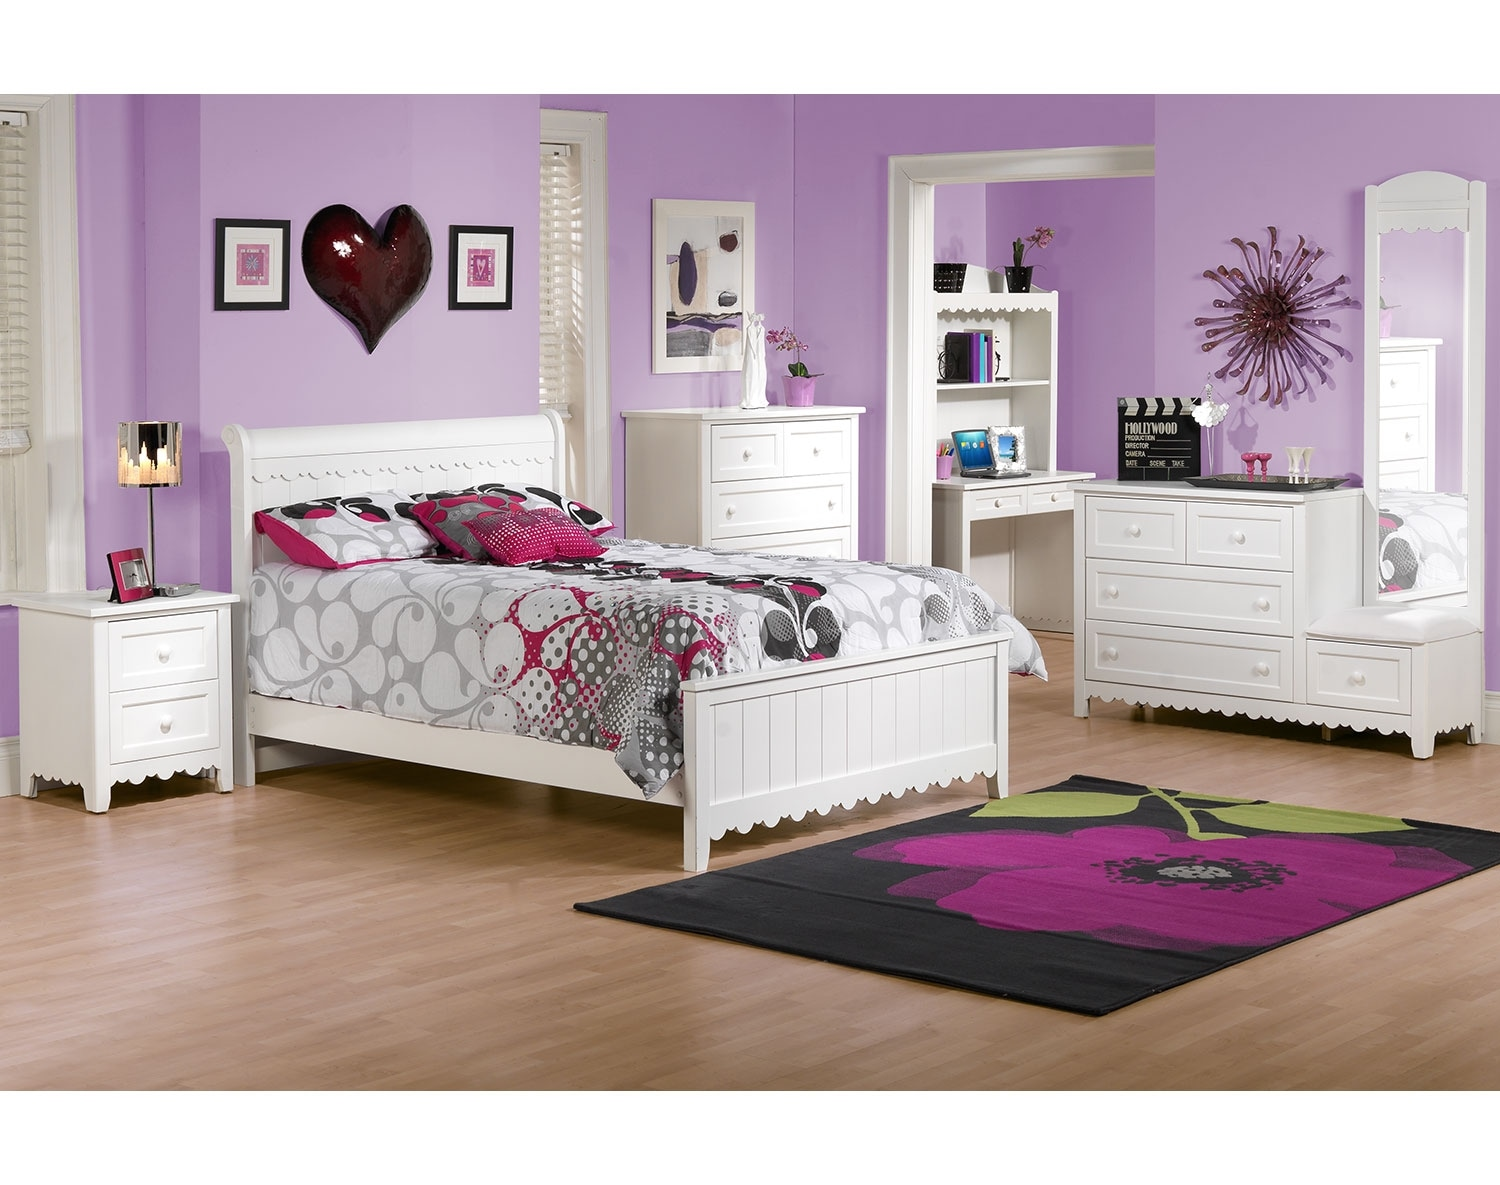 The Sweetdreams Collection - White